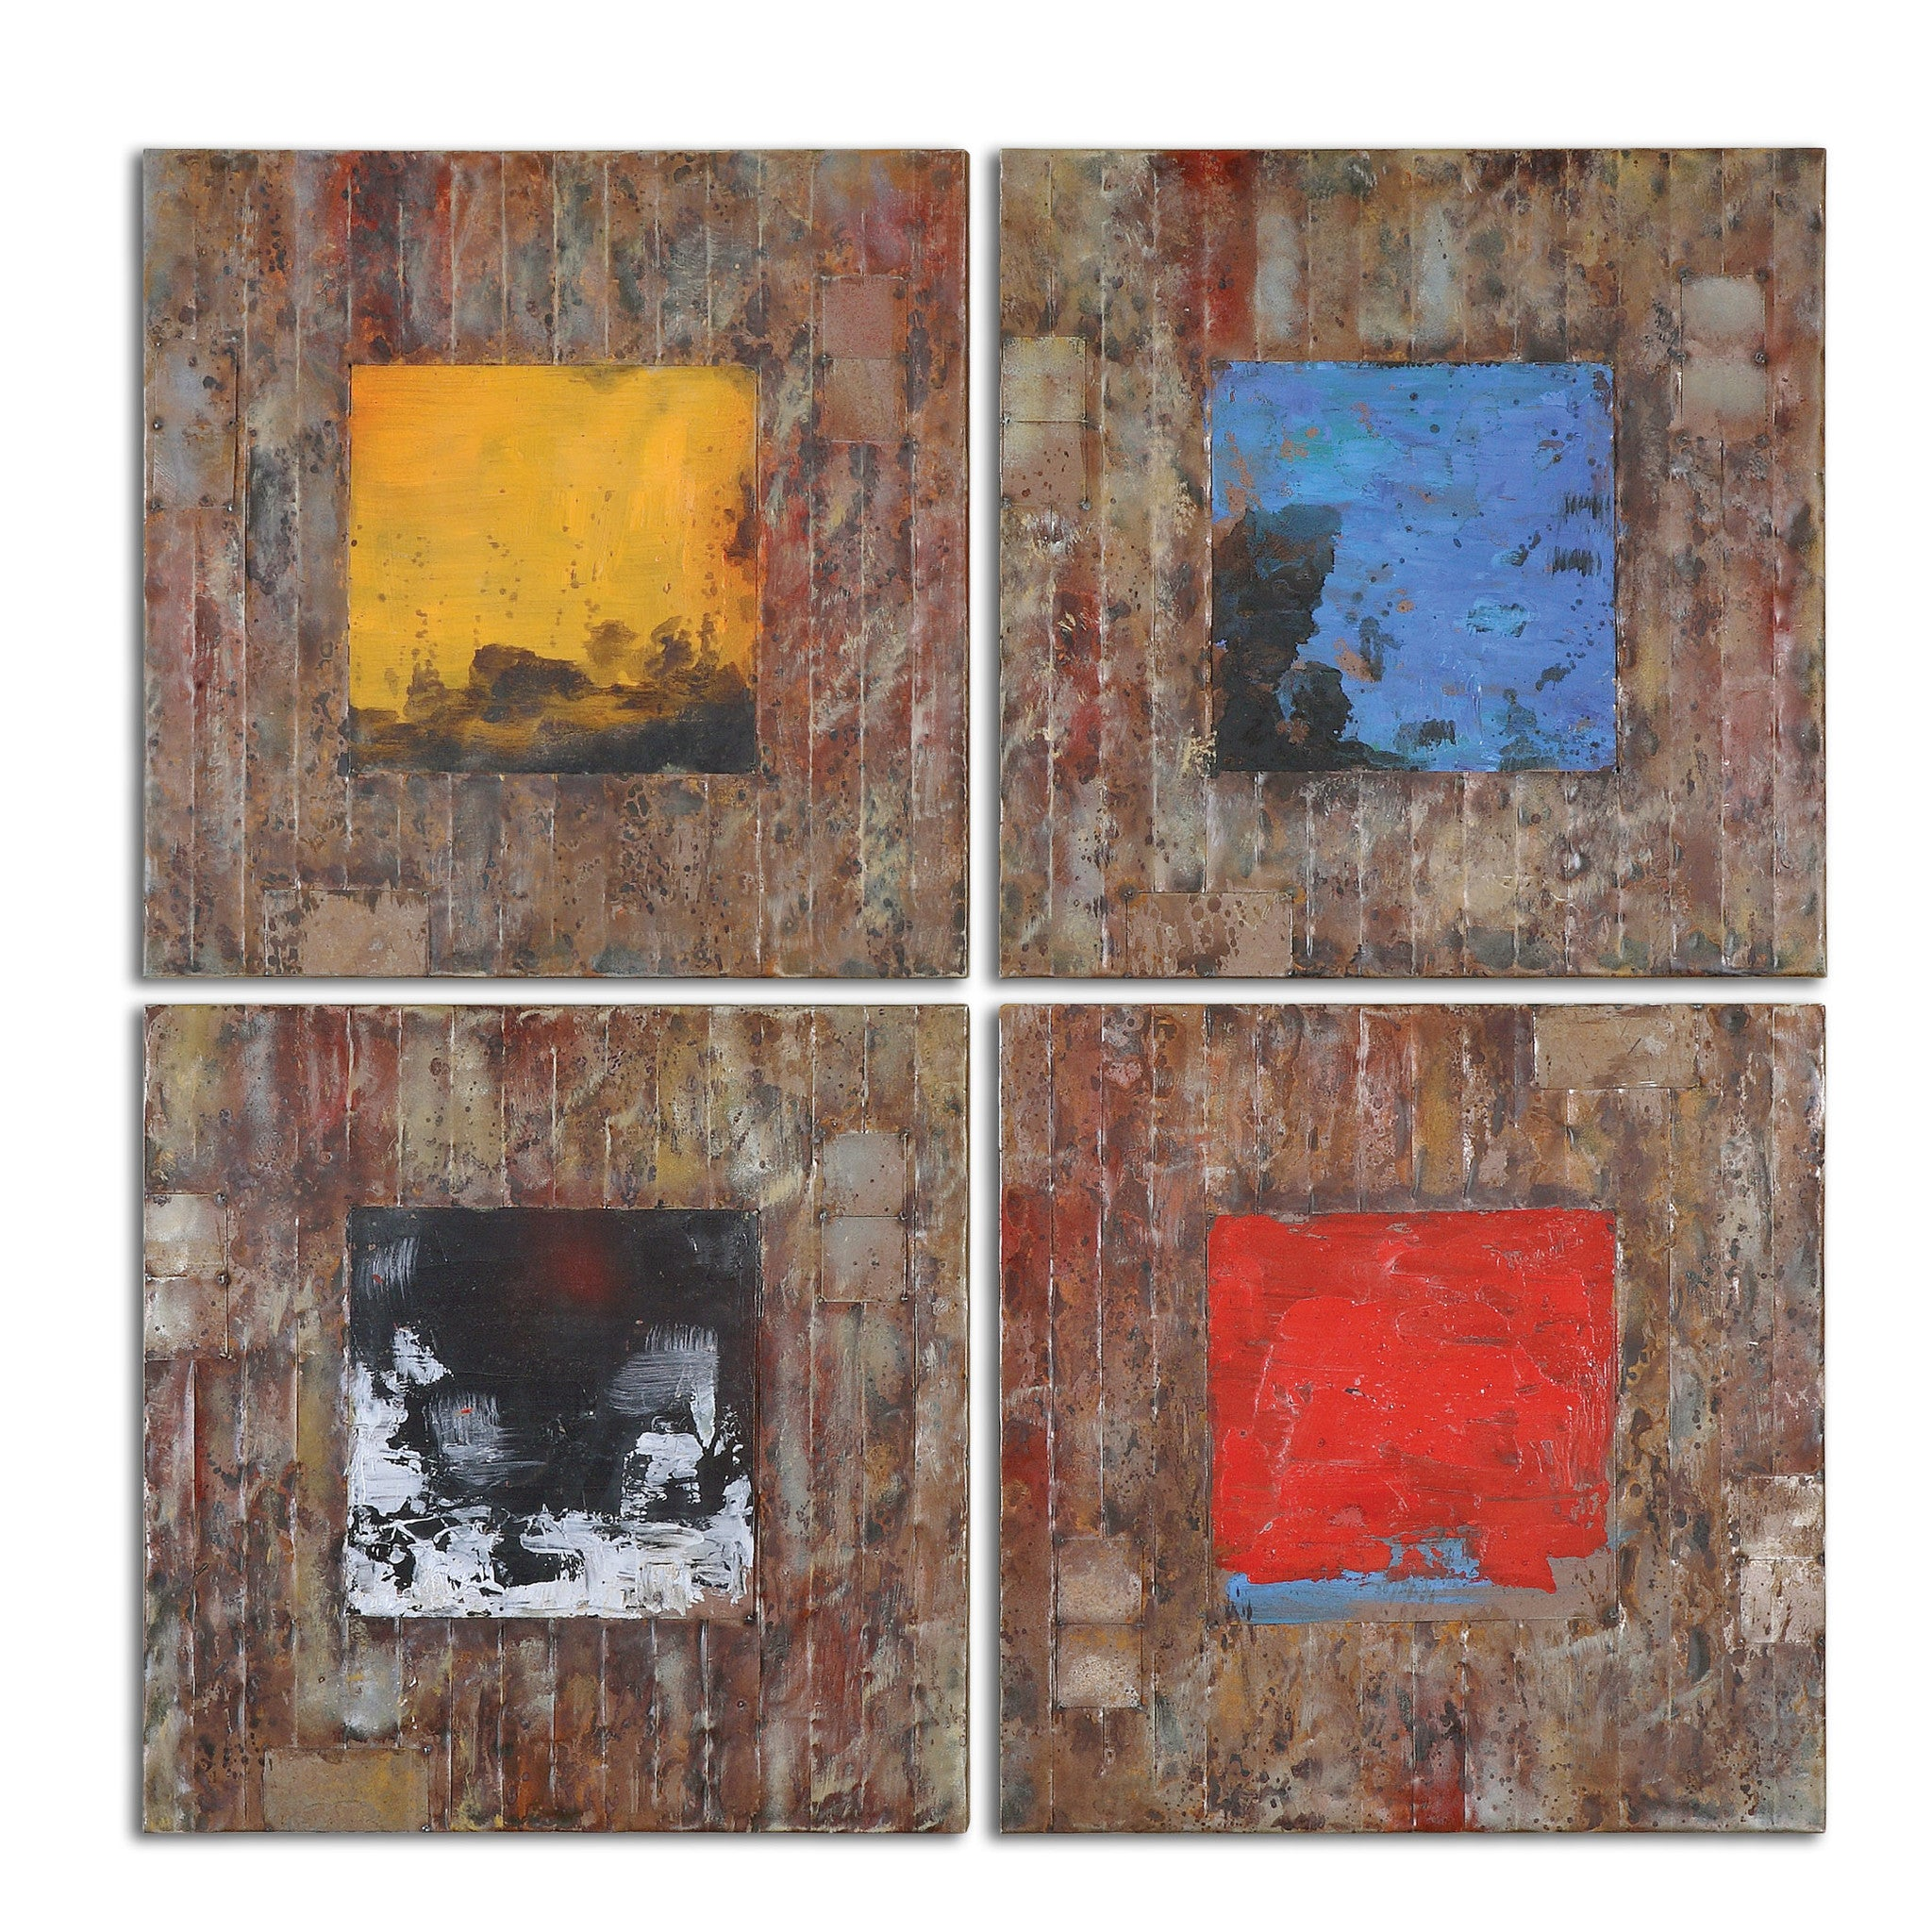 Squares of primary colors painted onto reclaimed wood